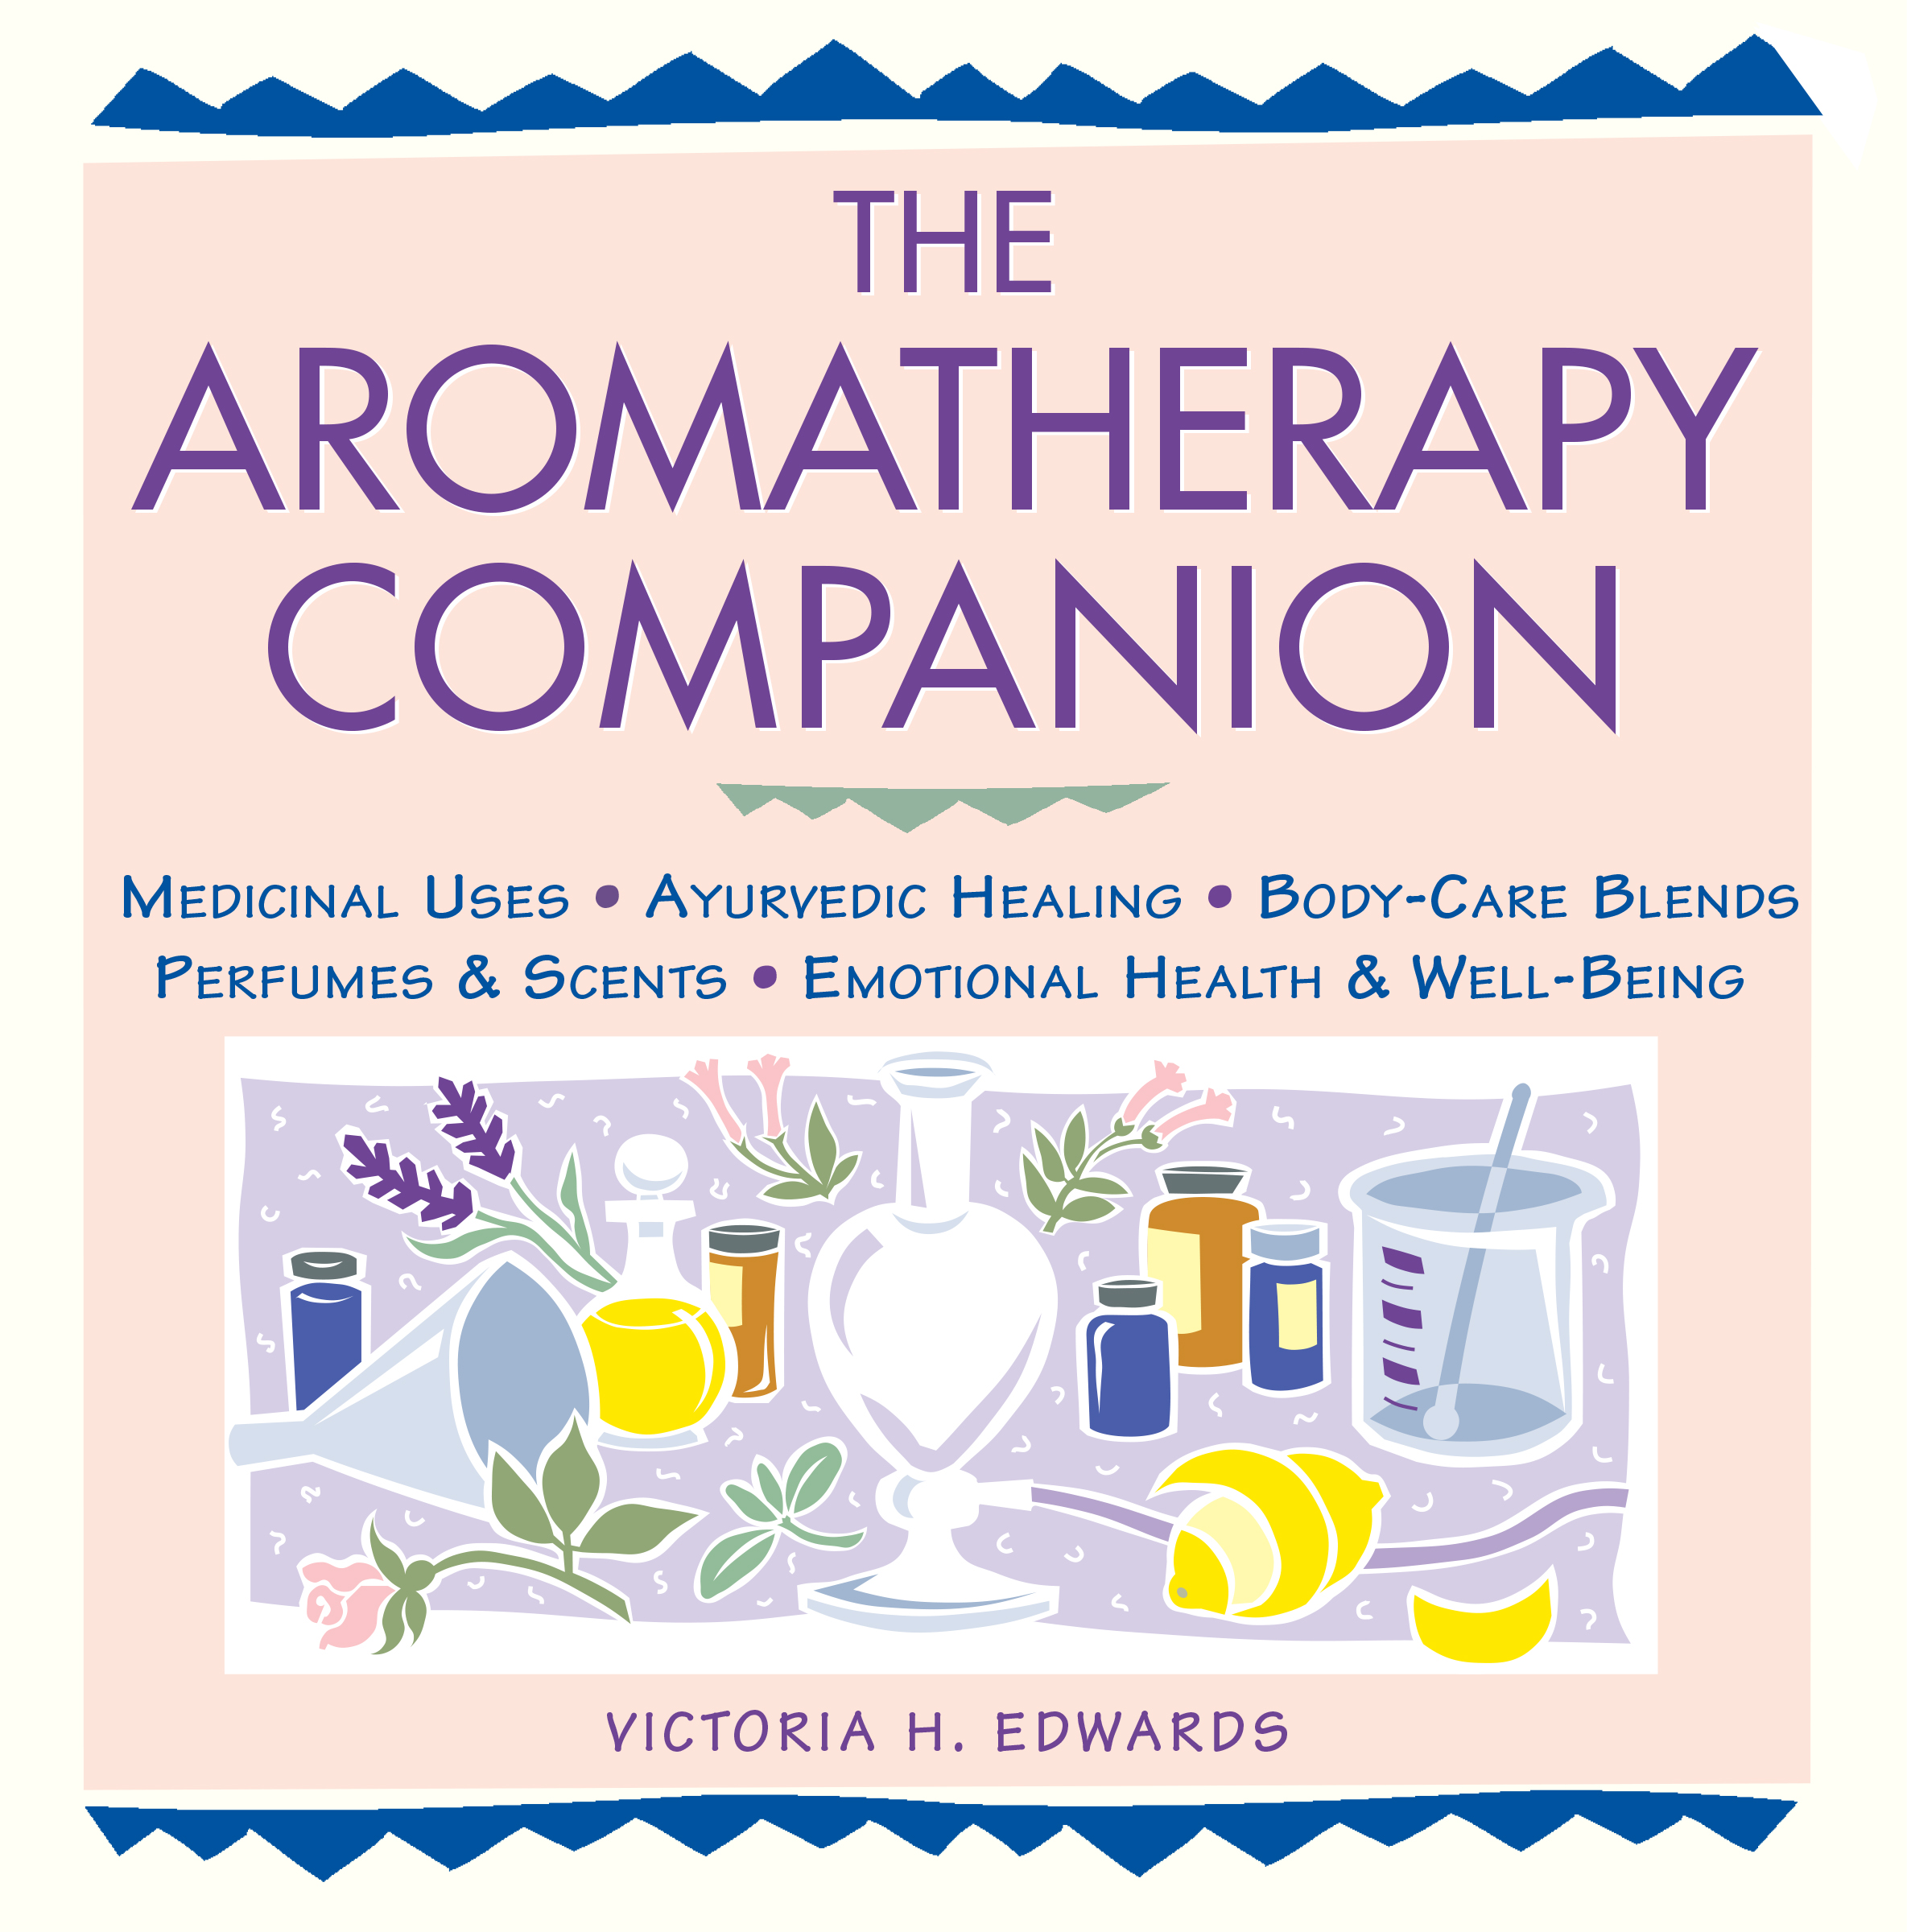 The Aromatherapy Companion Medicinal Uses/Ayurvedic Healing/Body-Care Blends/Perfumes & Scents/Emotional Health & Well-Being - Victoria H. Edwards